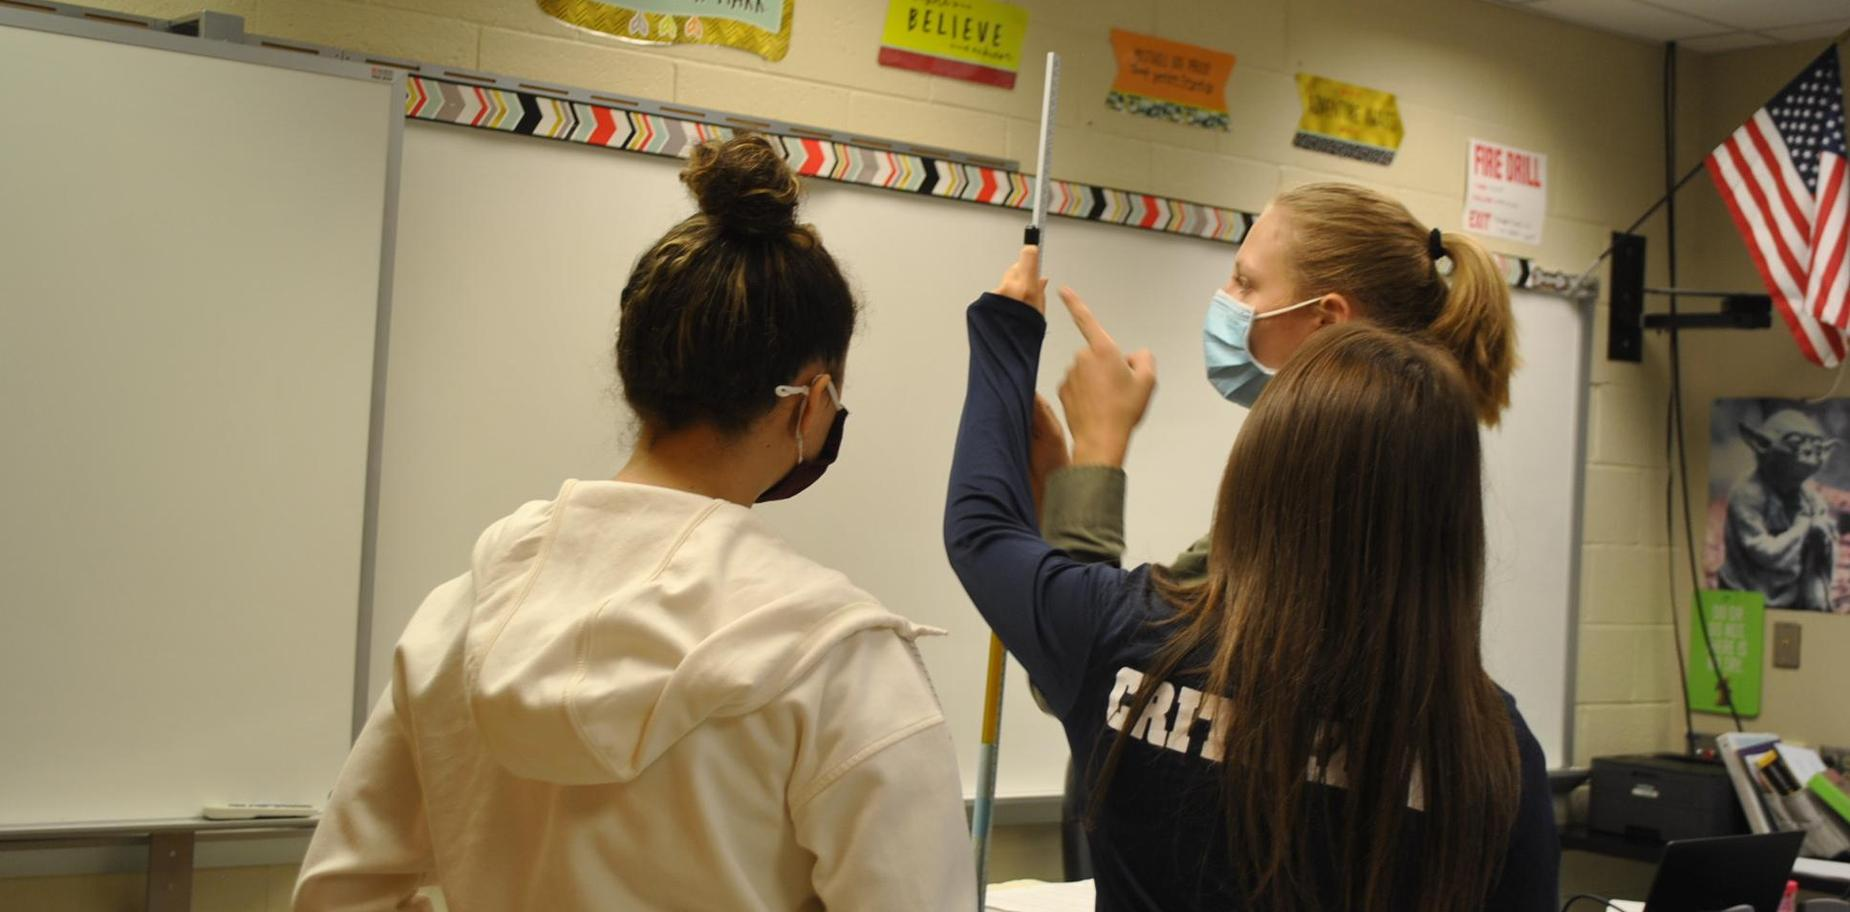 Physics students completing a lab